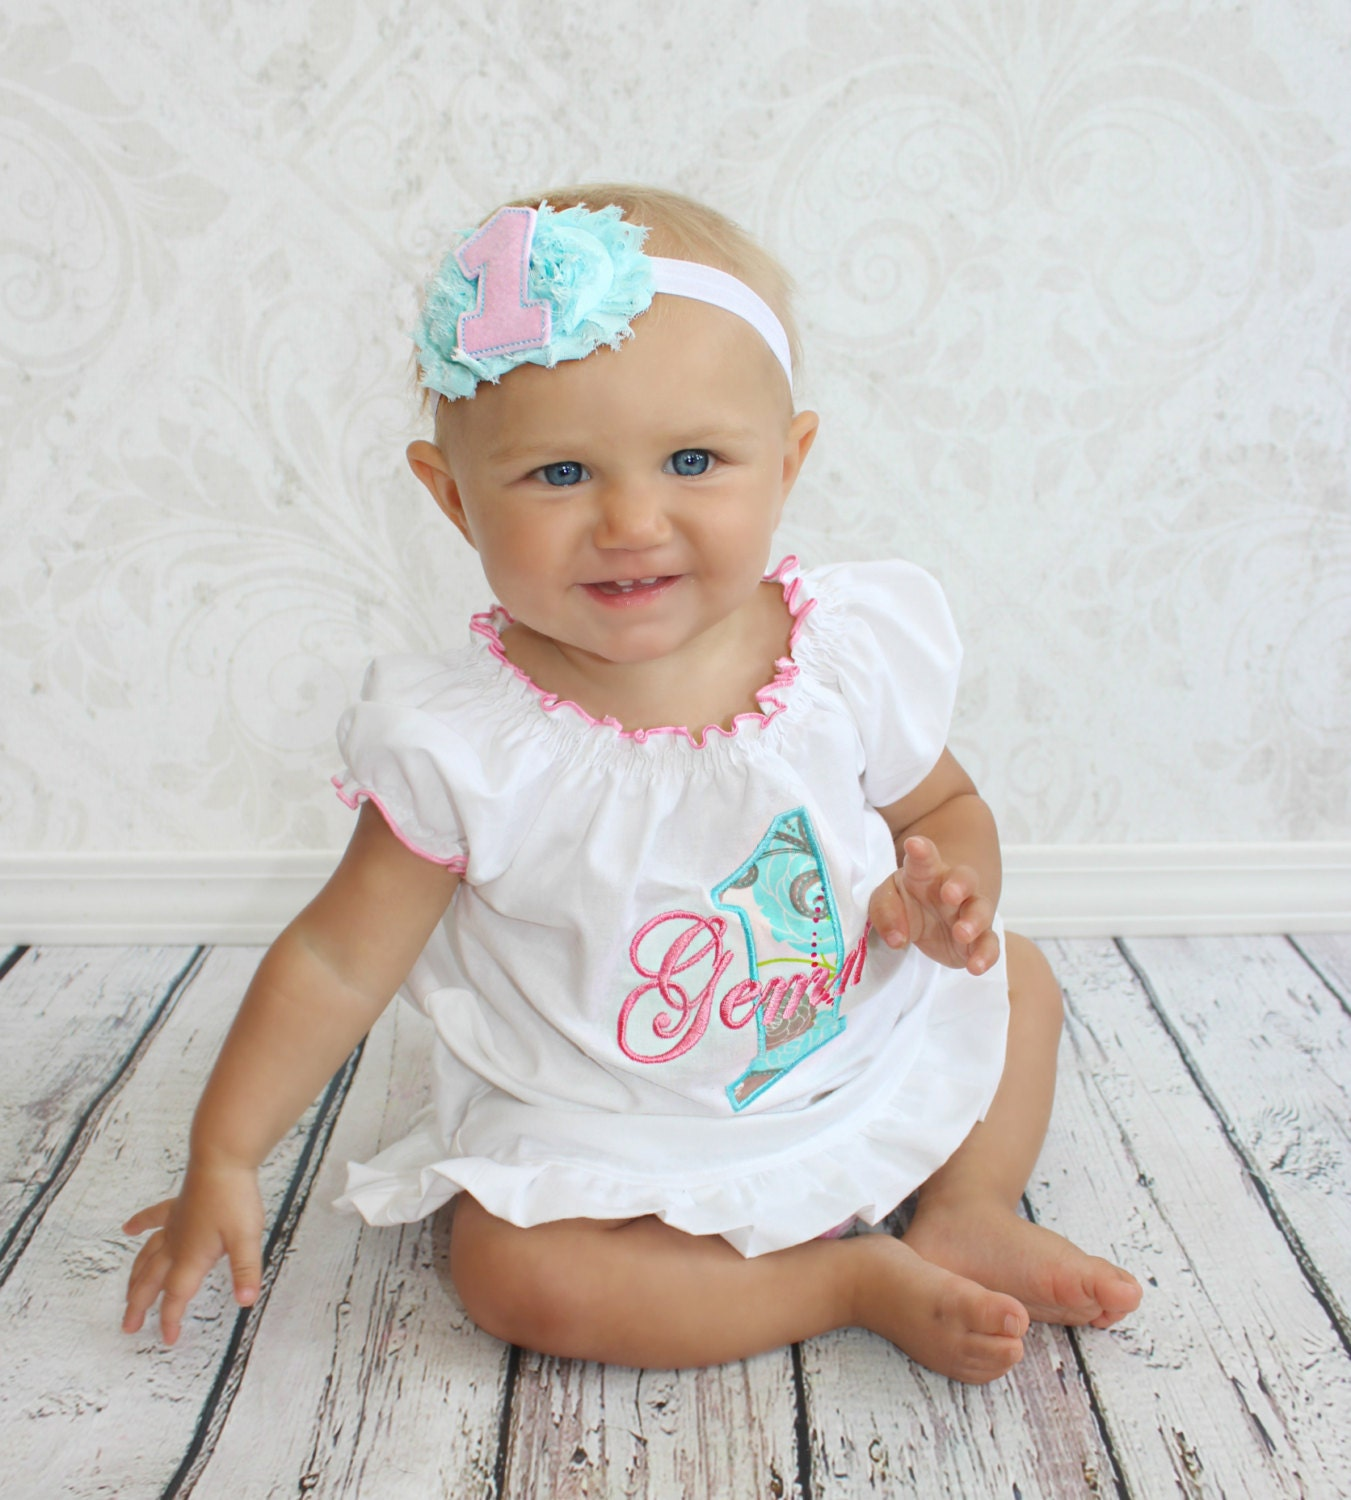 2nd Birthday Outfit, Baby Girl Clothing, Cake Smash Outfit, Second Birthday Shirt, Birthday Outfit, Baby Girl Birthday Clothing, Cake Smash PrettyGirlSwagCo. 5 out of 5 stars () $ Eligible orders ship free Favorite Add to See similar items.